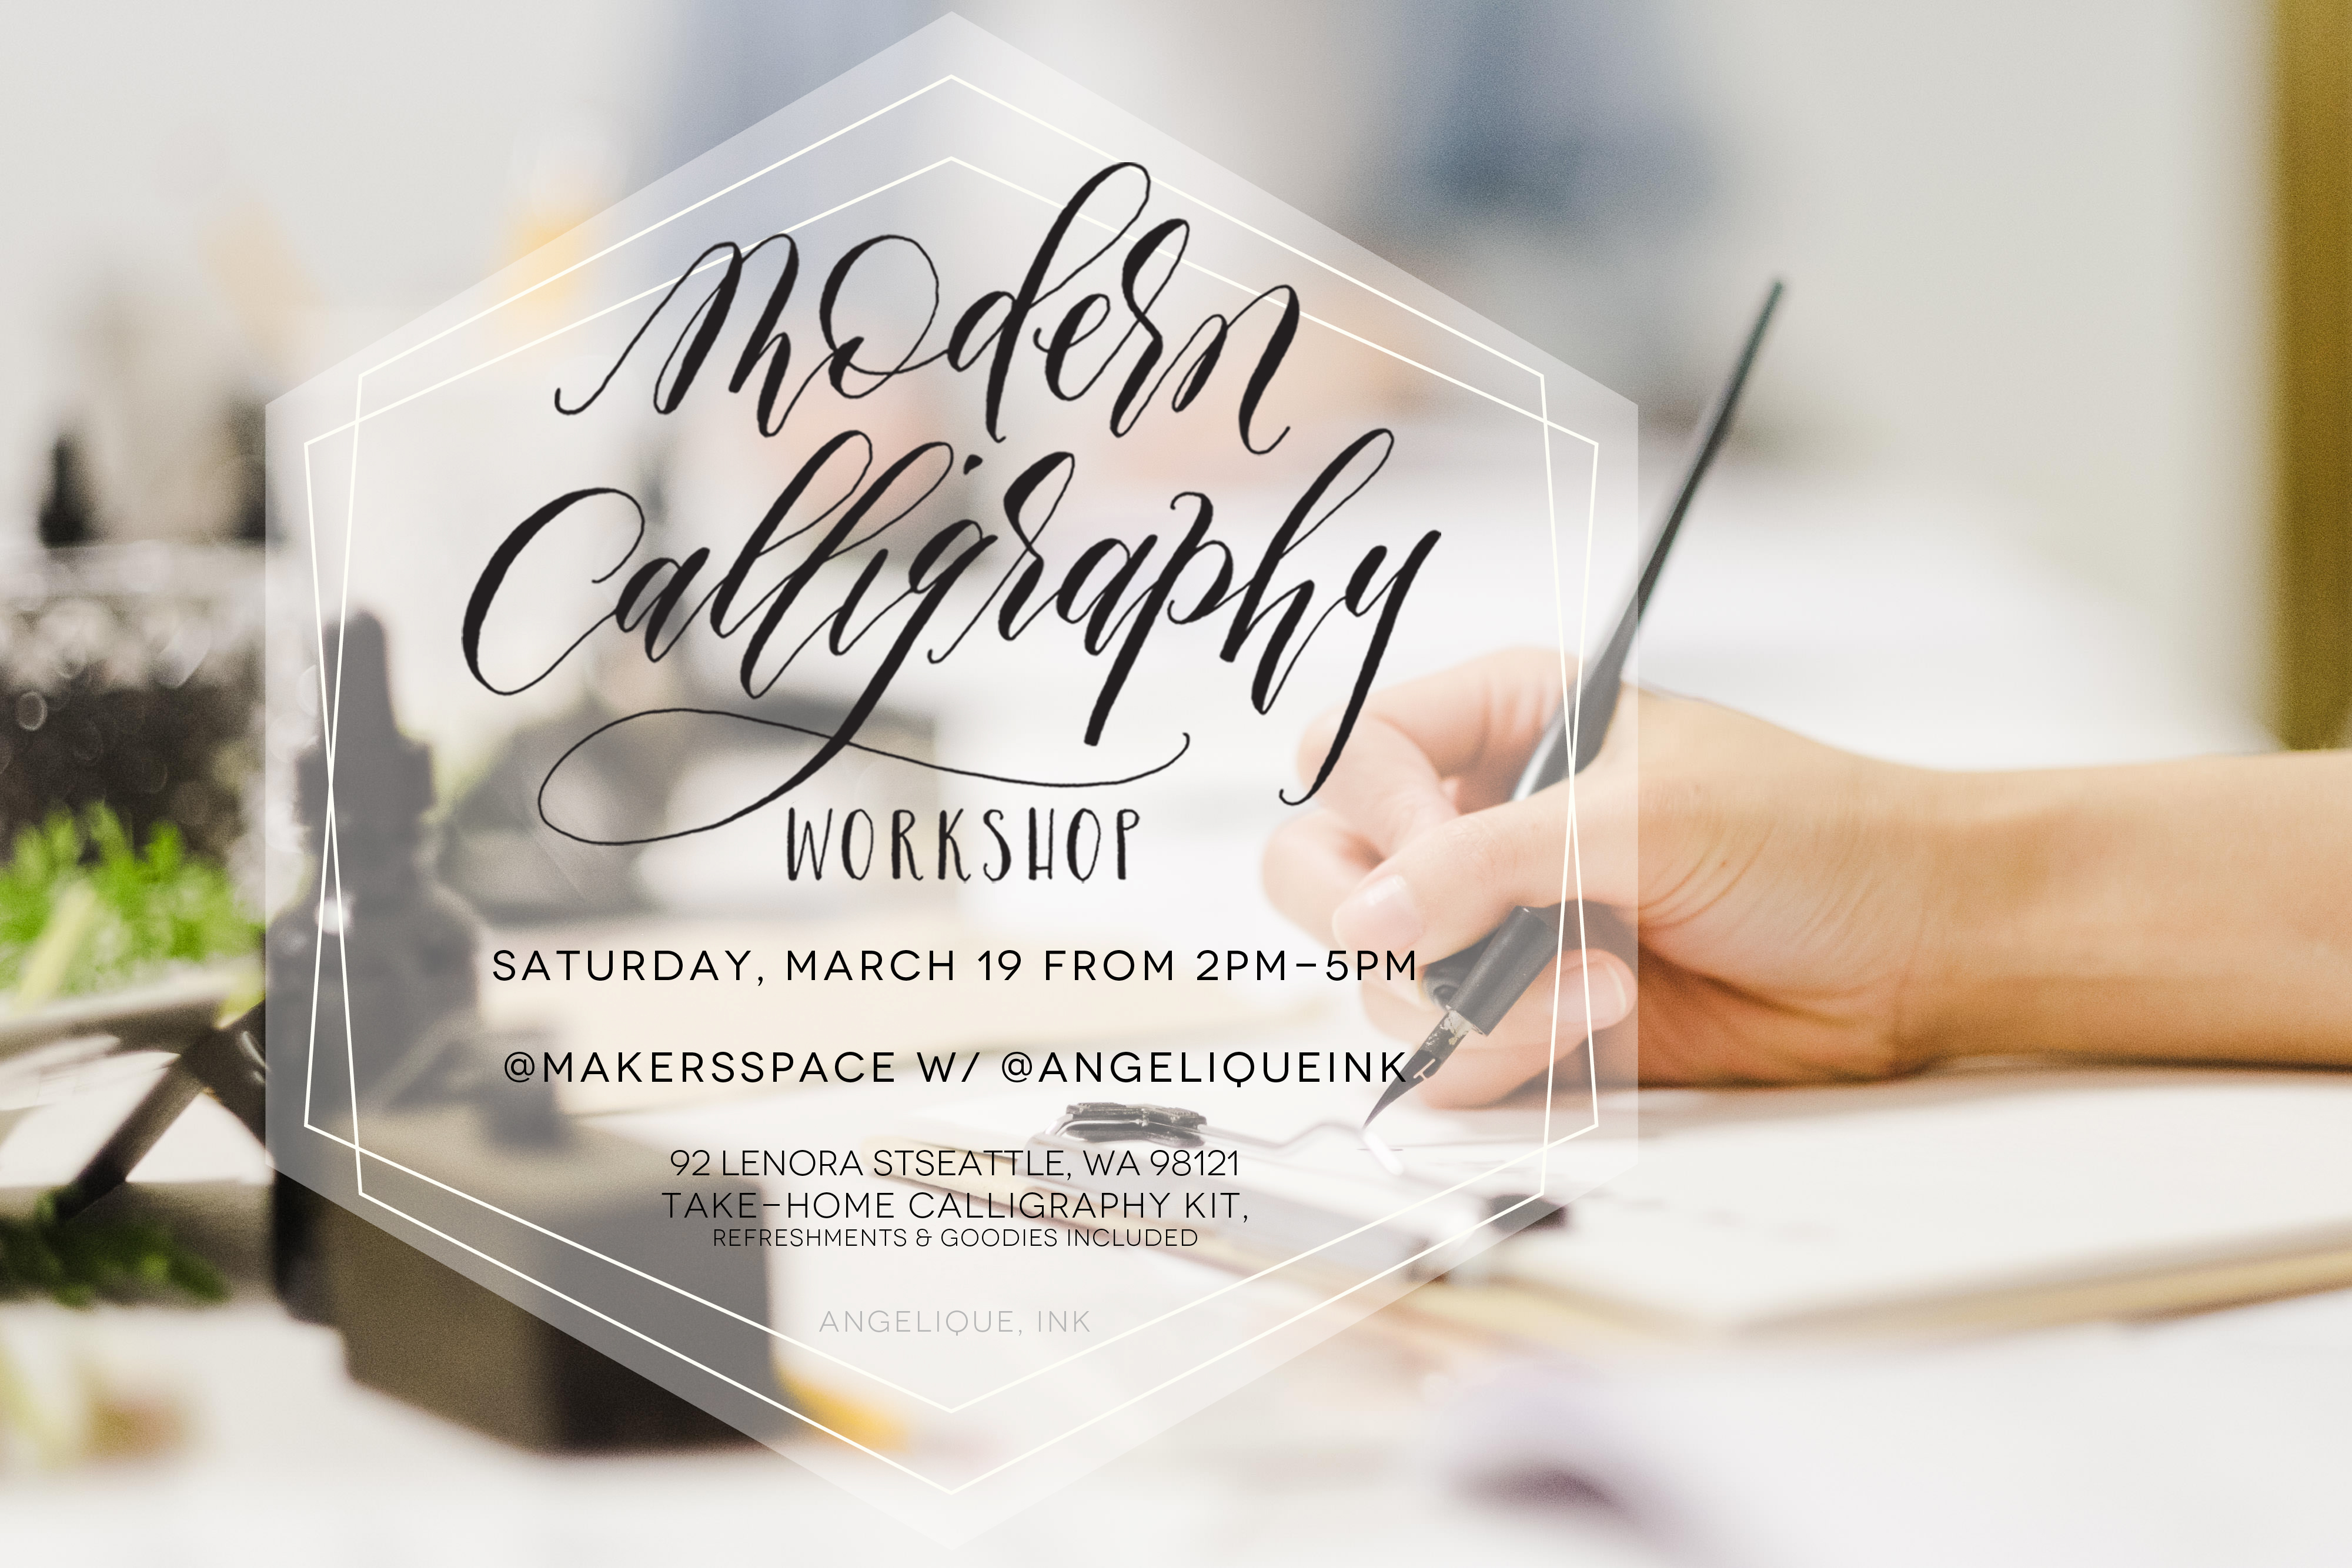 Calligraphy For Beginners Online March 19 Seattle Modern Calligraphy Workshop From Angeliqueink